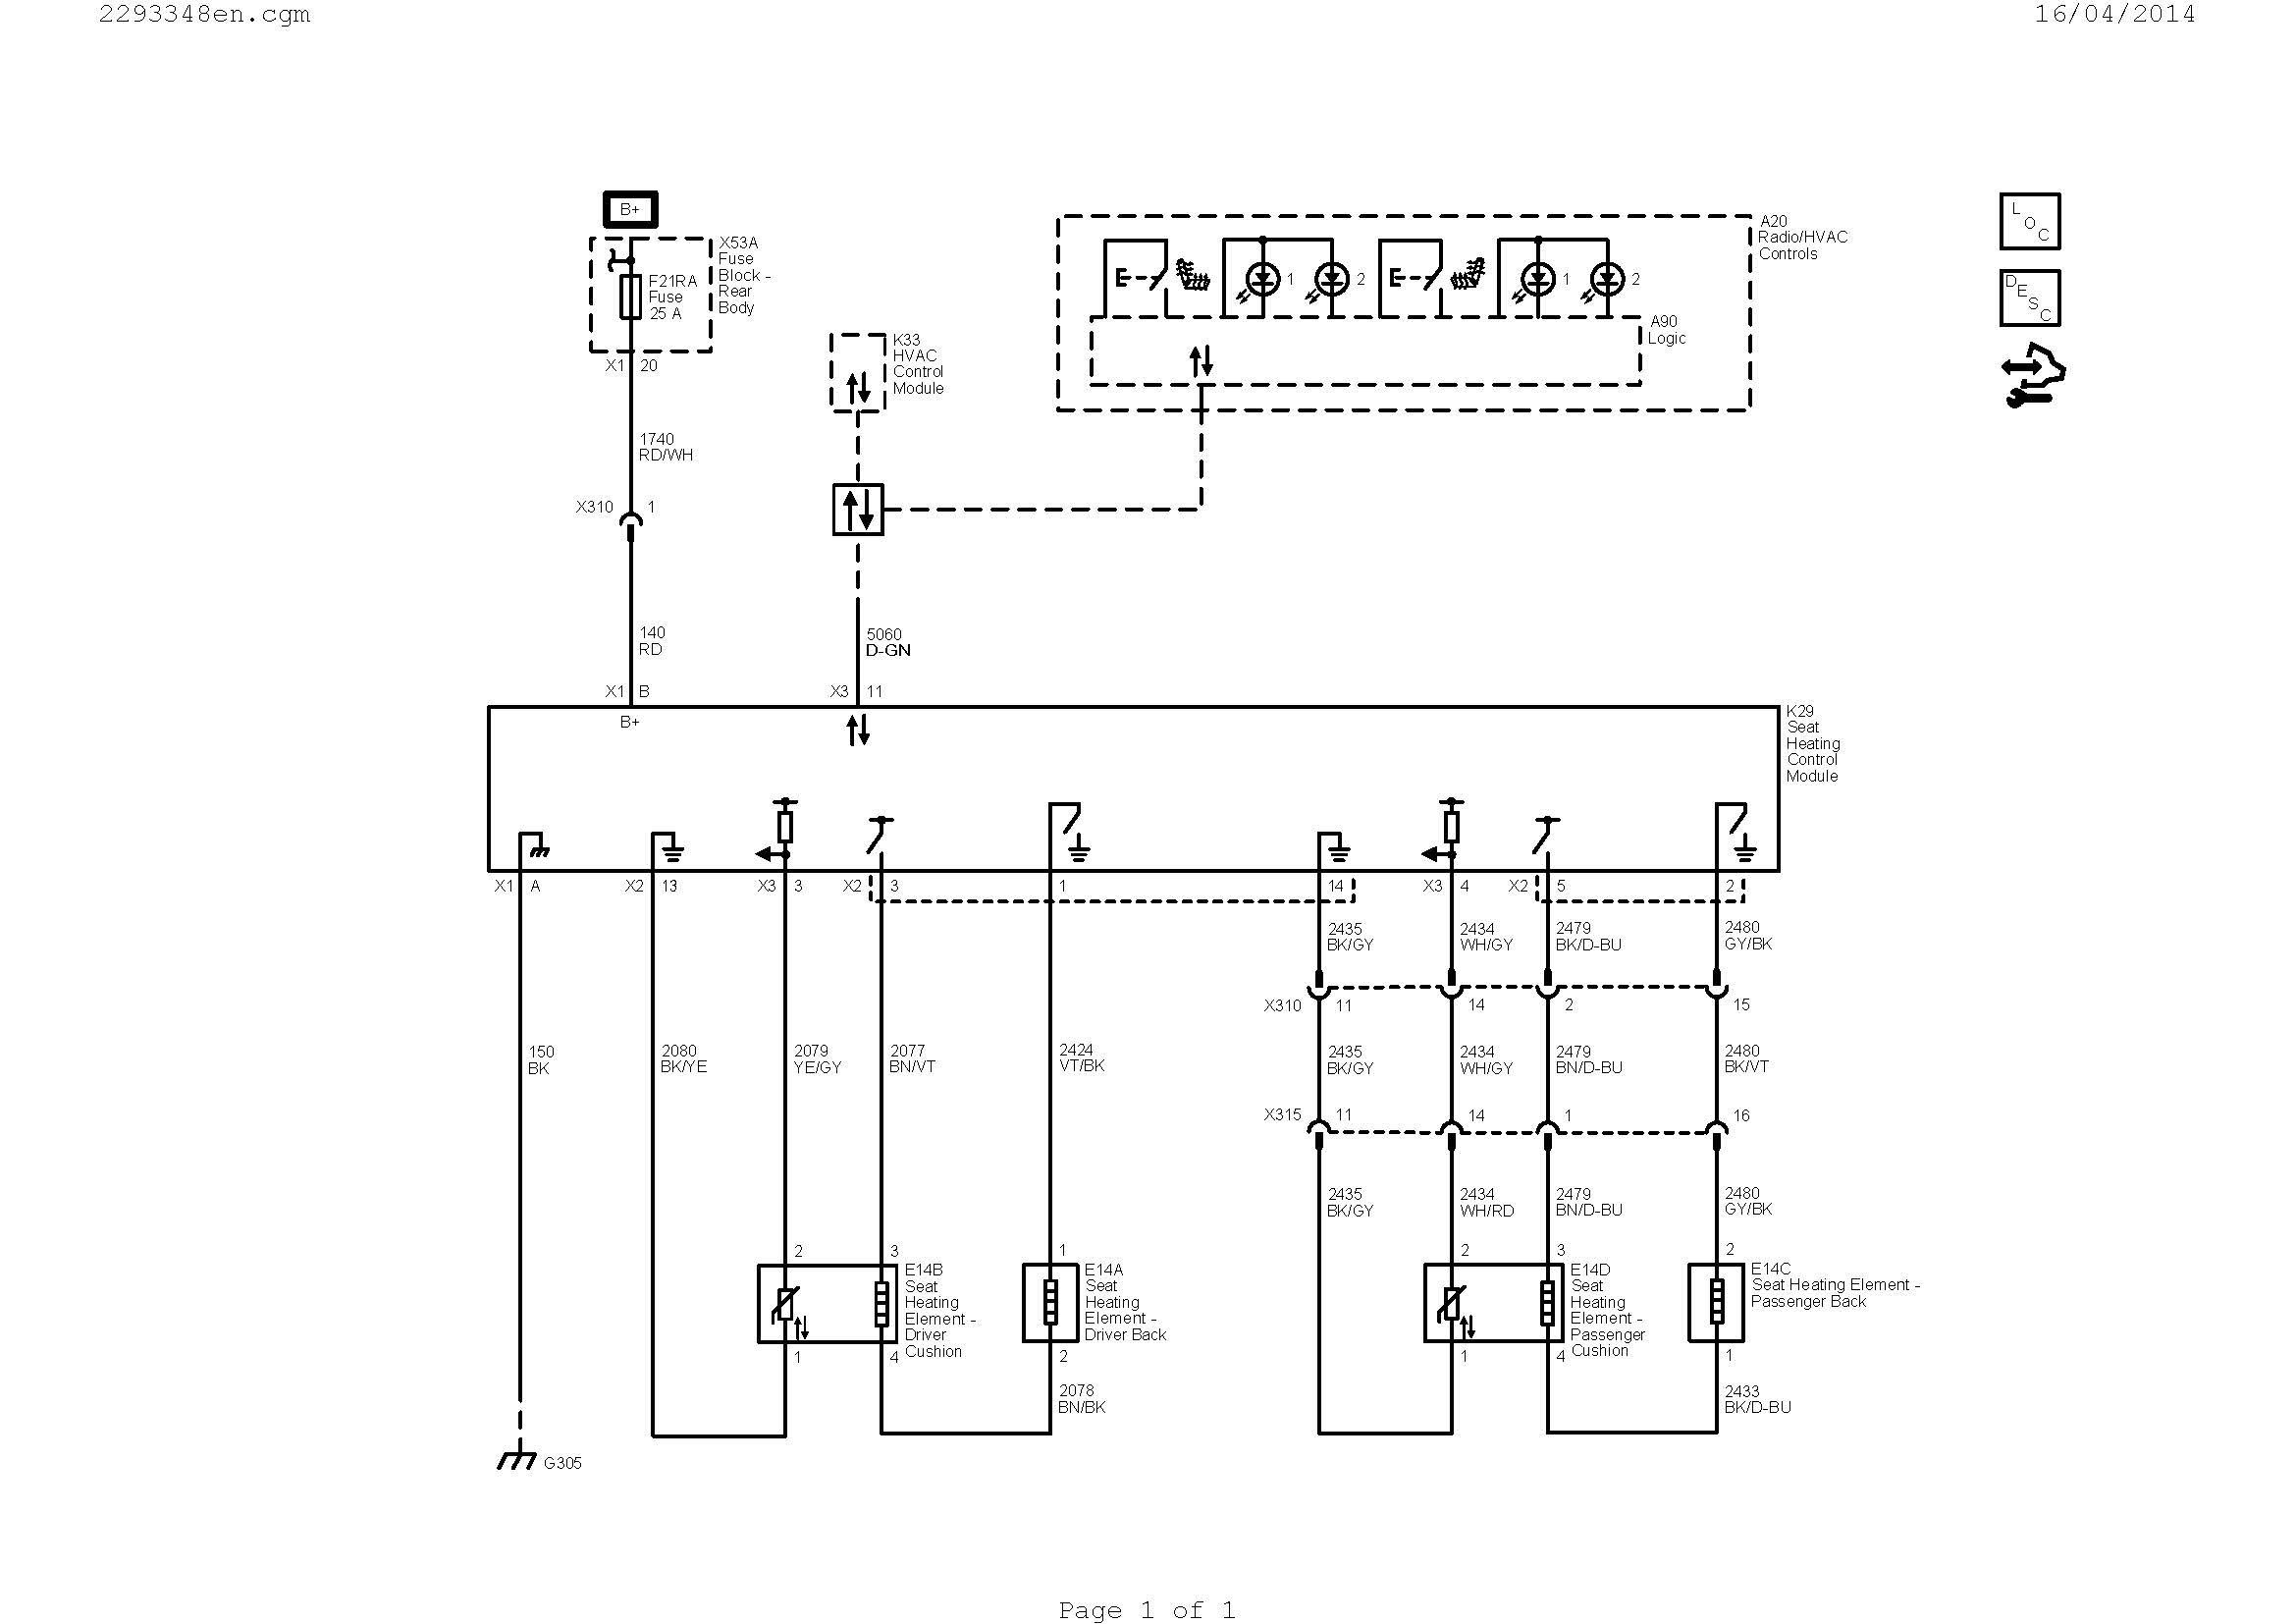 hvac thermostat wiring diagram Download-Nest Wireless thermostat Wiring Diagram Refrence Wiring Diagram Ac Valid Hvac Diagram Best Hvac Diagram 0d 2-n